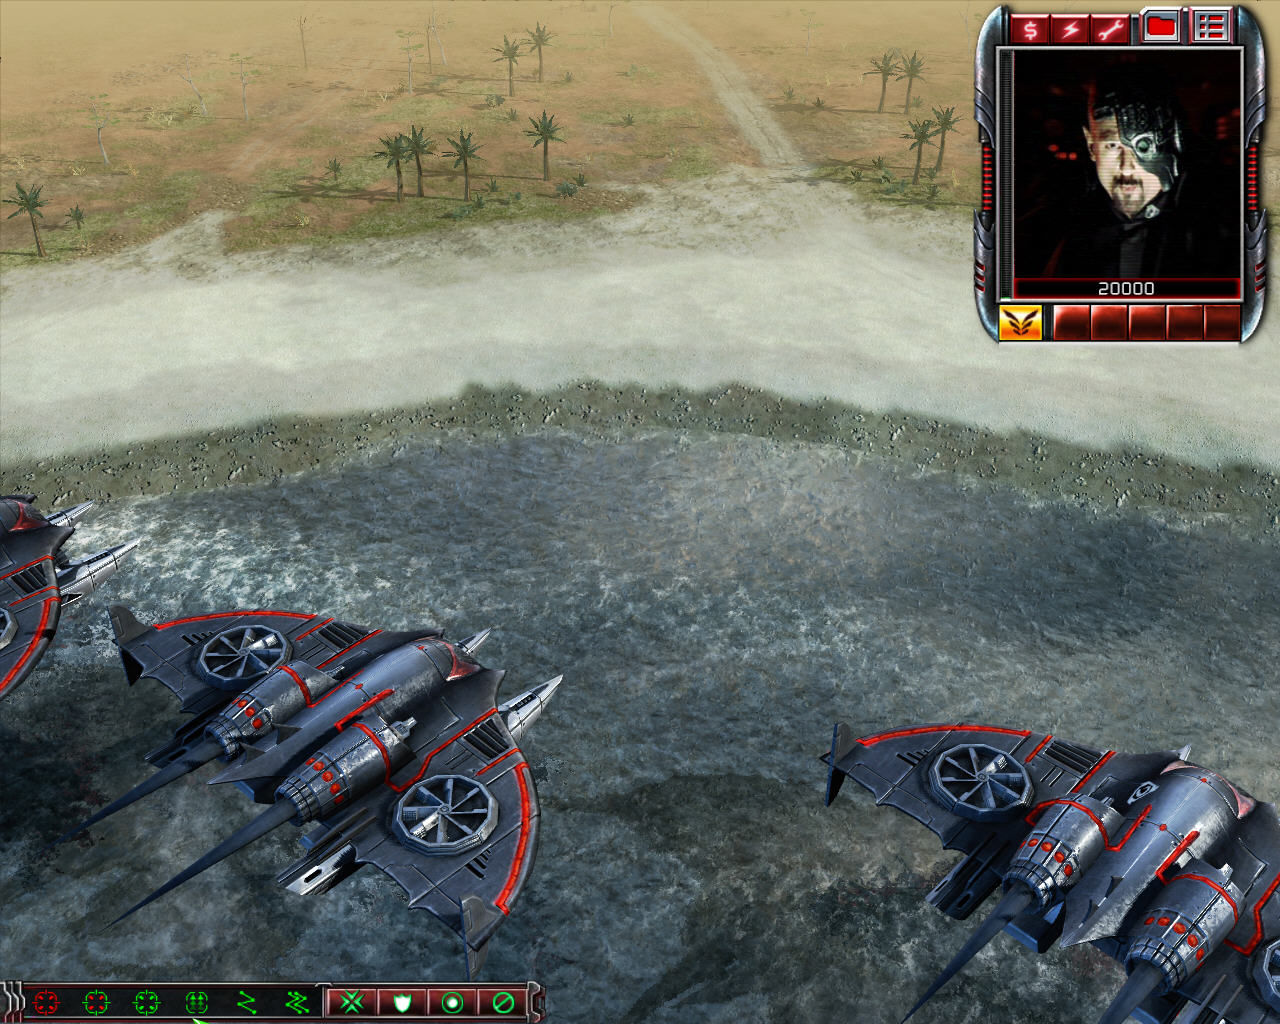 Command & Conquer 3: Kane's Wrath Windows Nod arriving to the beach